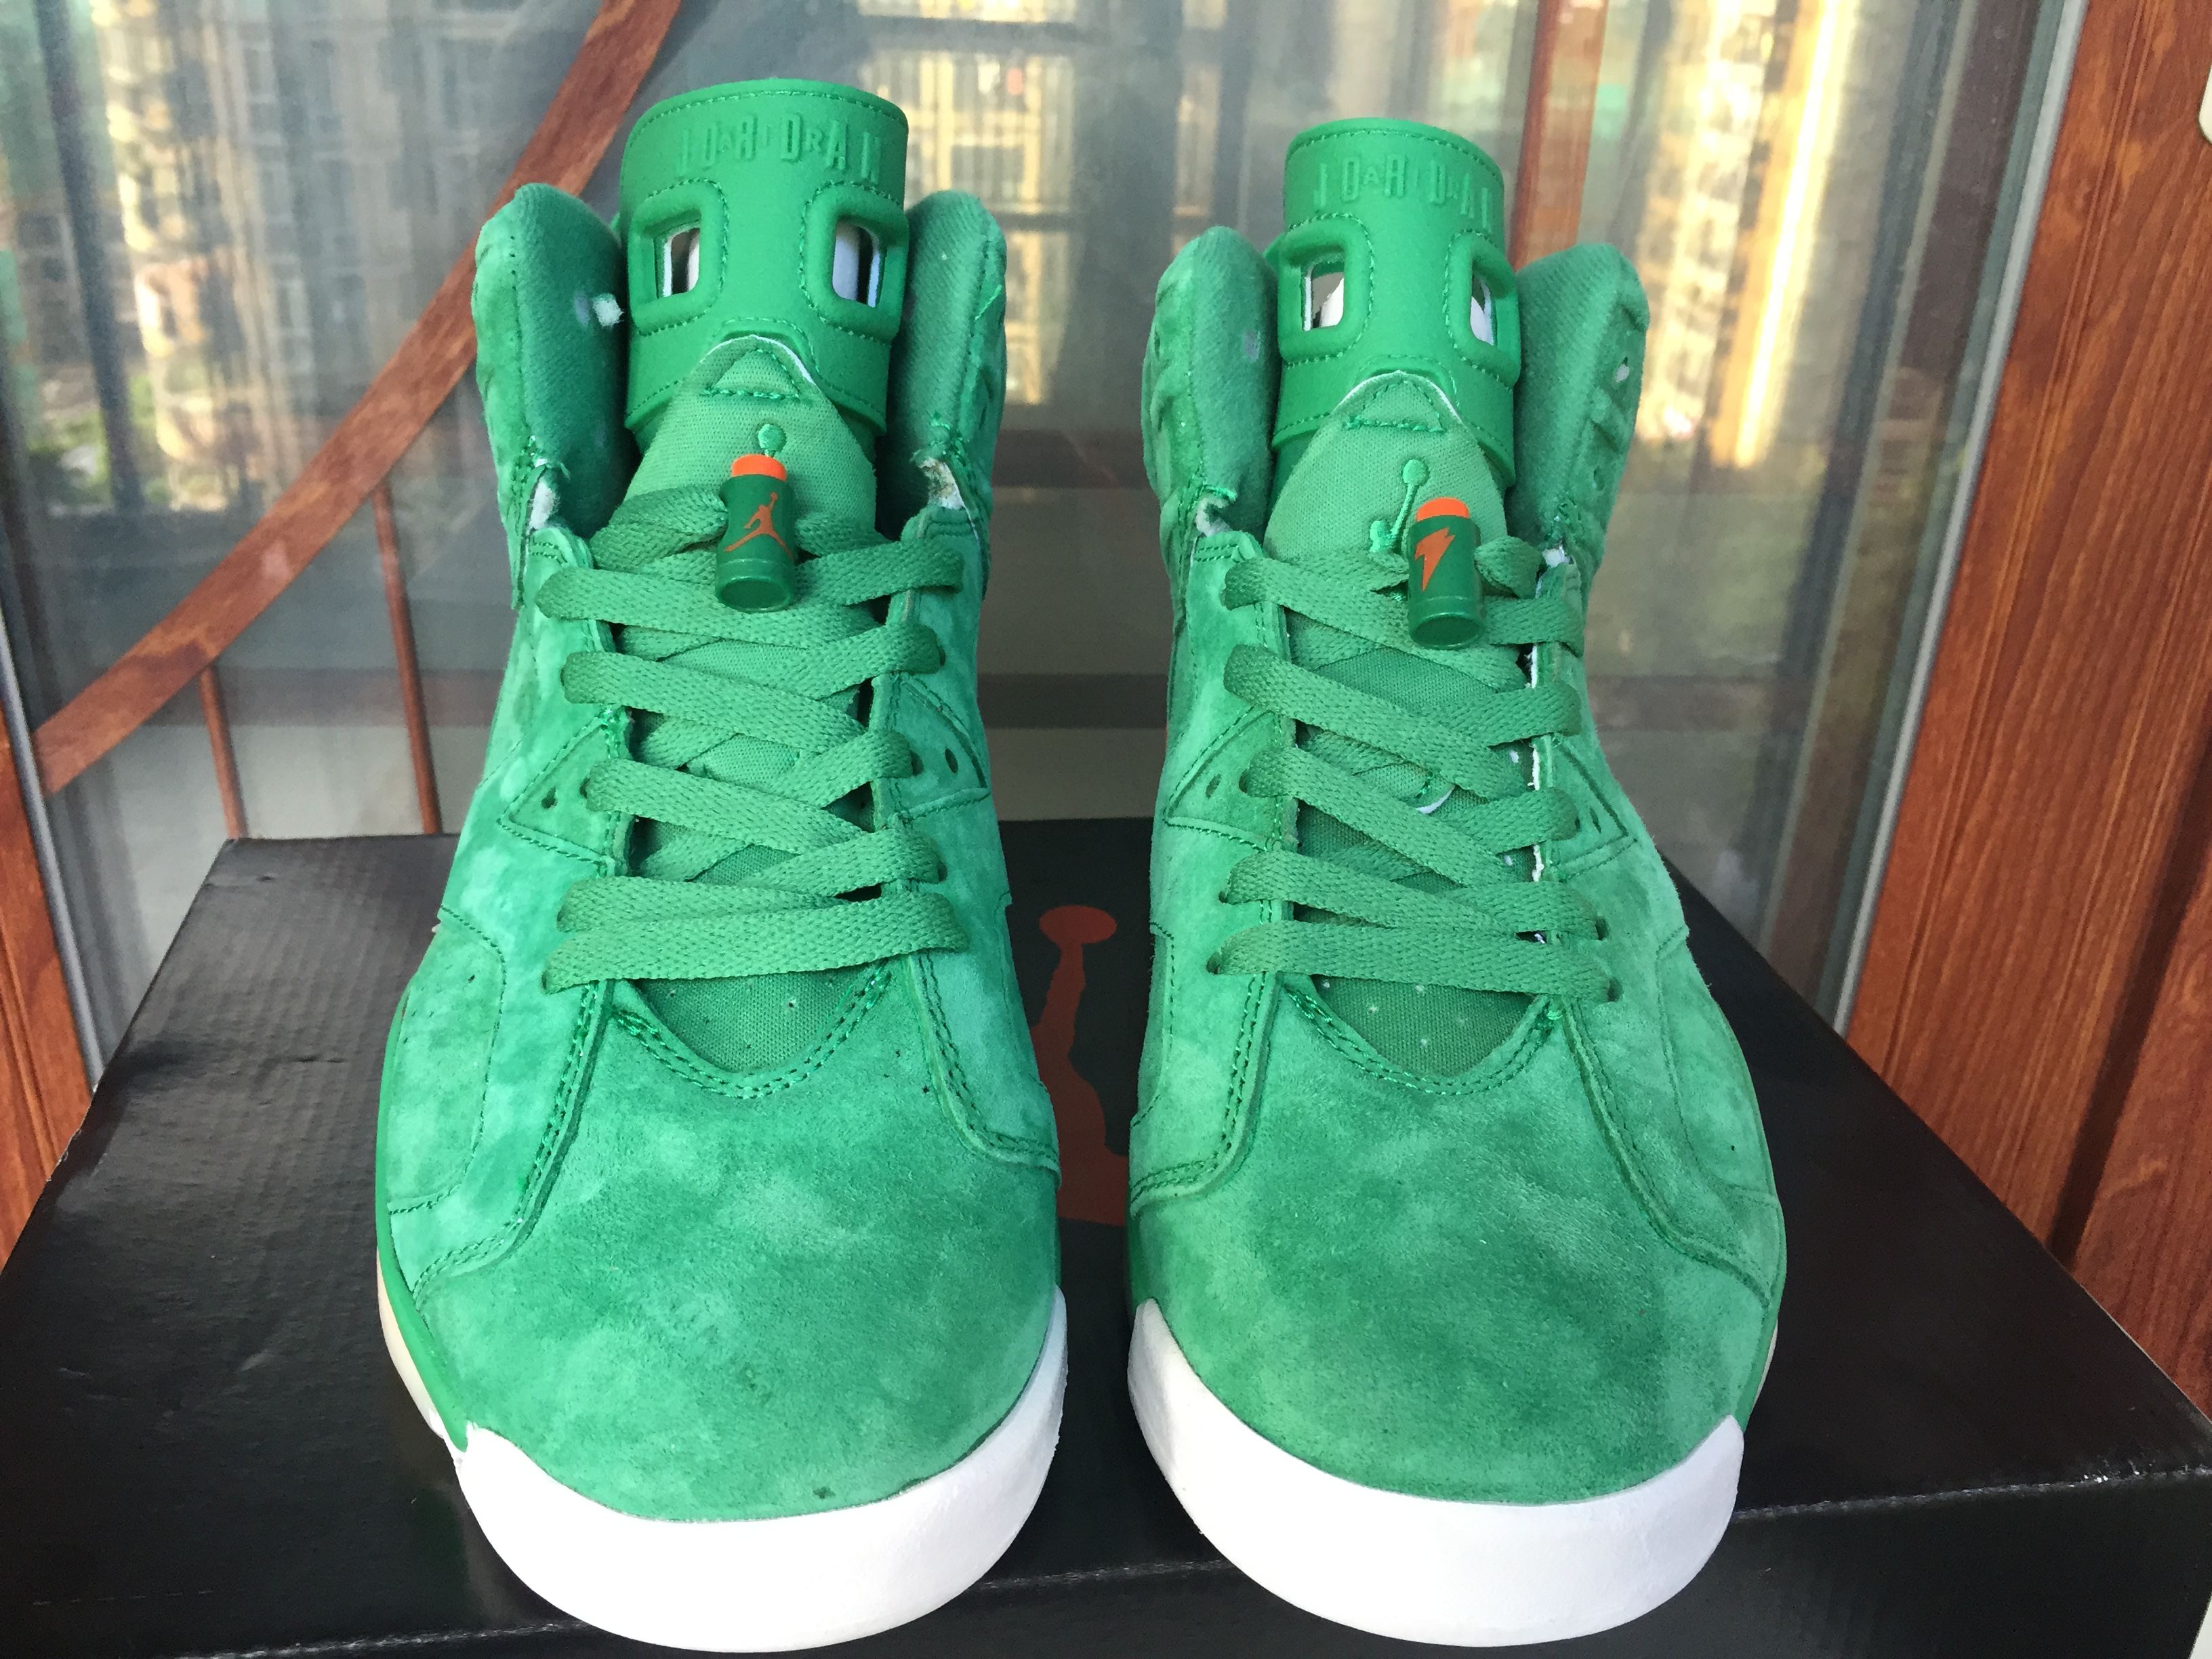 Cheap Air Jordans 6 Gatorade Green Shoes